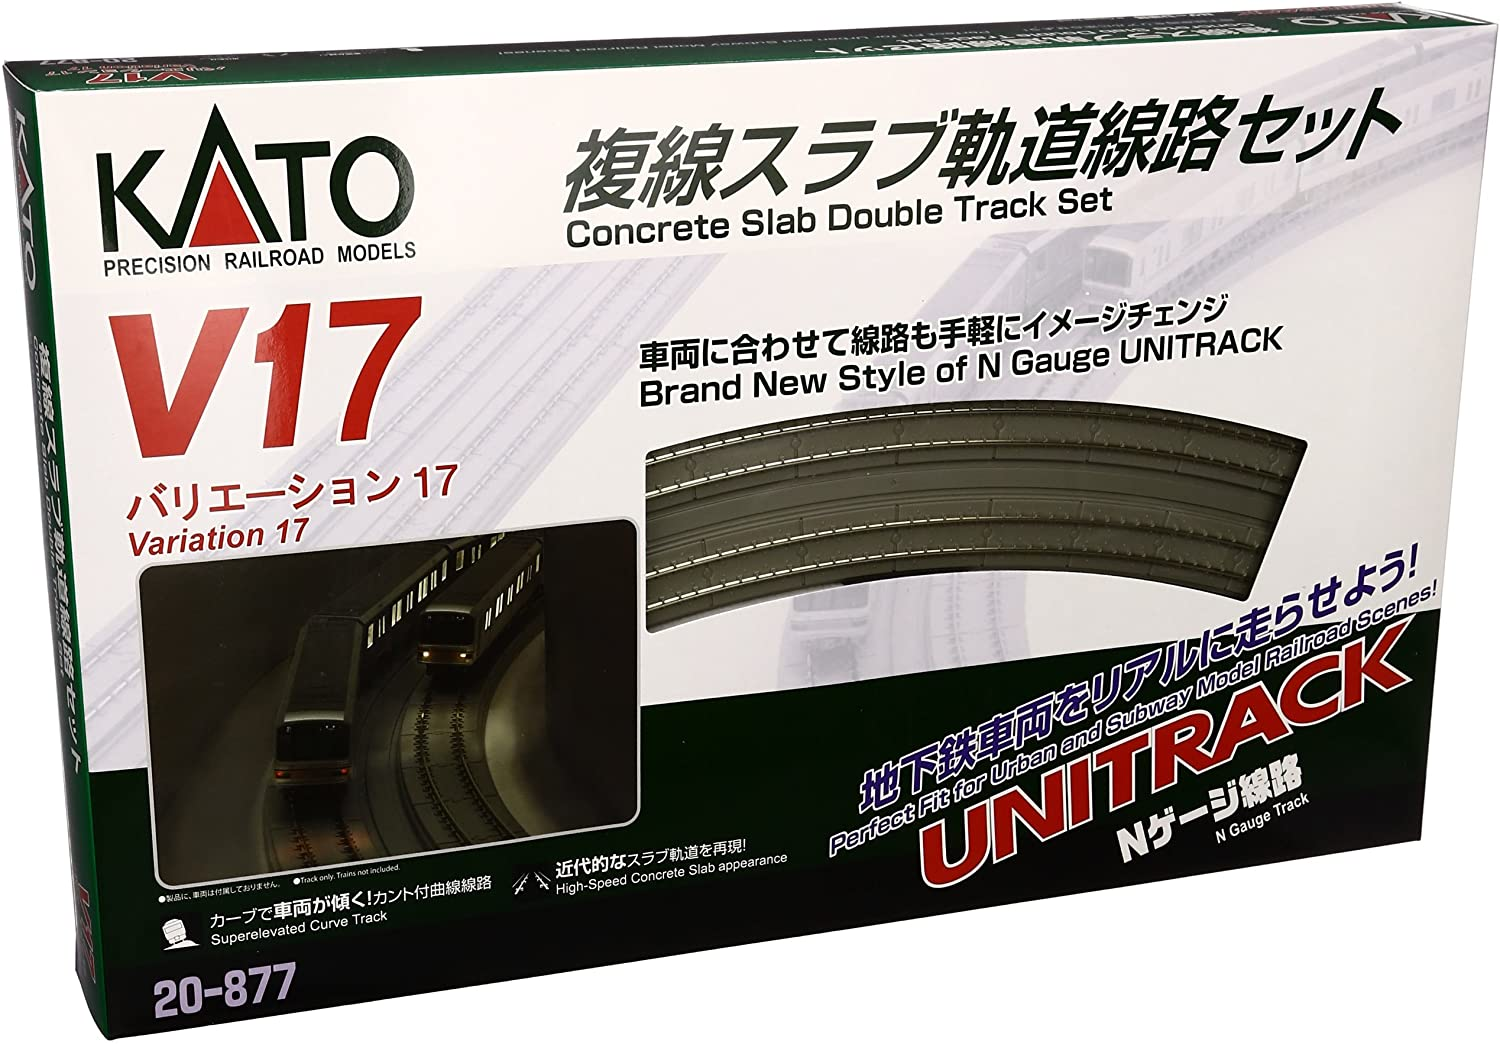 Kato USA Model Train Products V17 UNITRACK Japanese Packaging Version Concrete Slab Double Oval Track Set